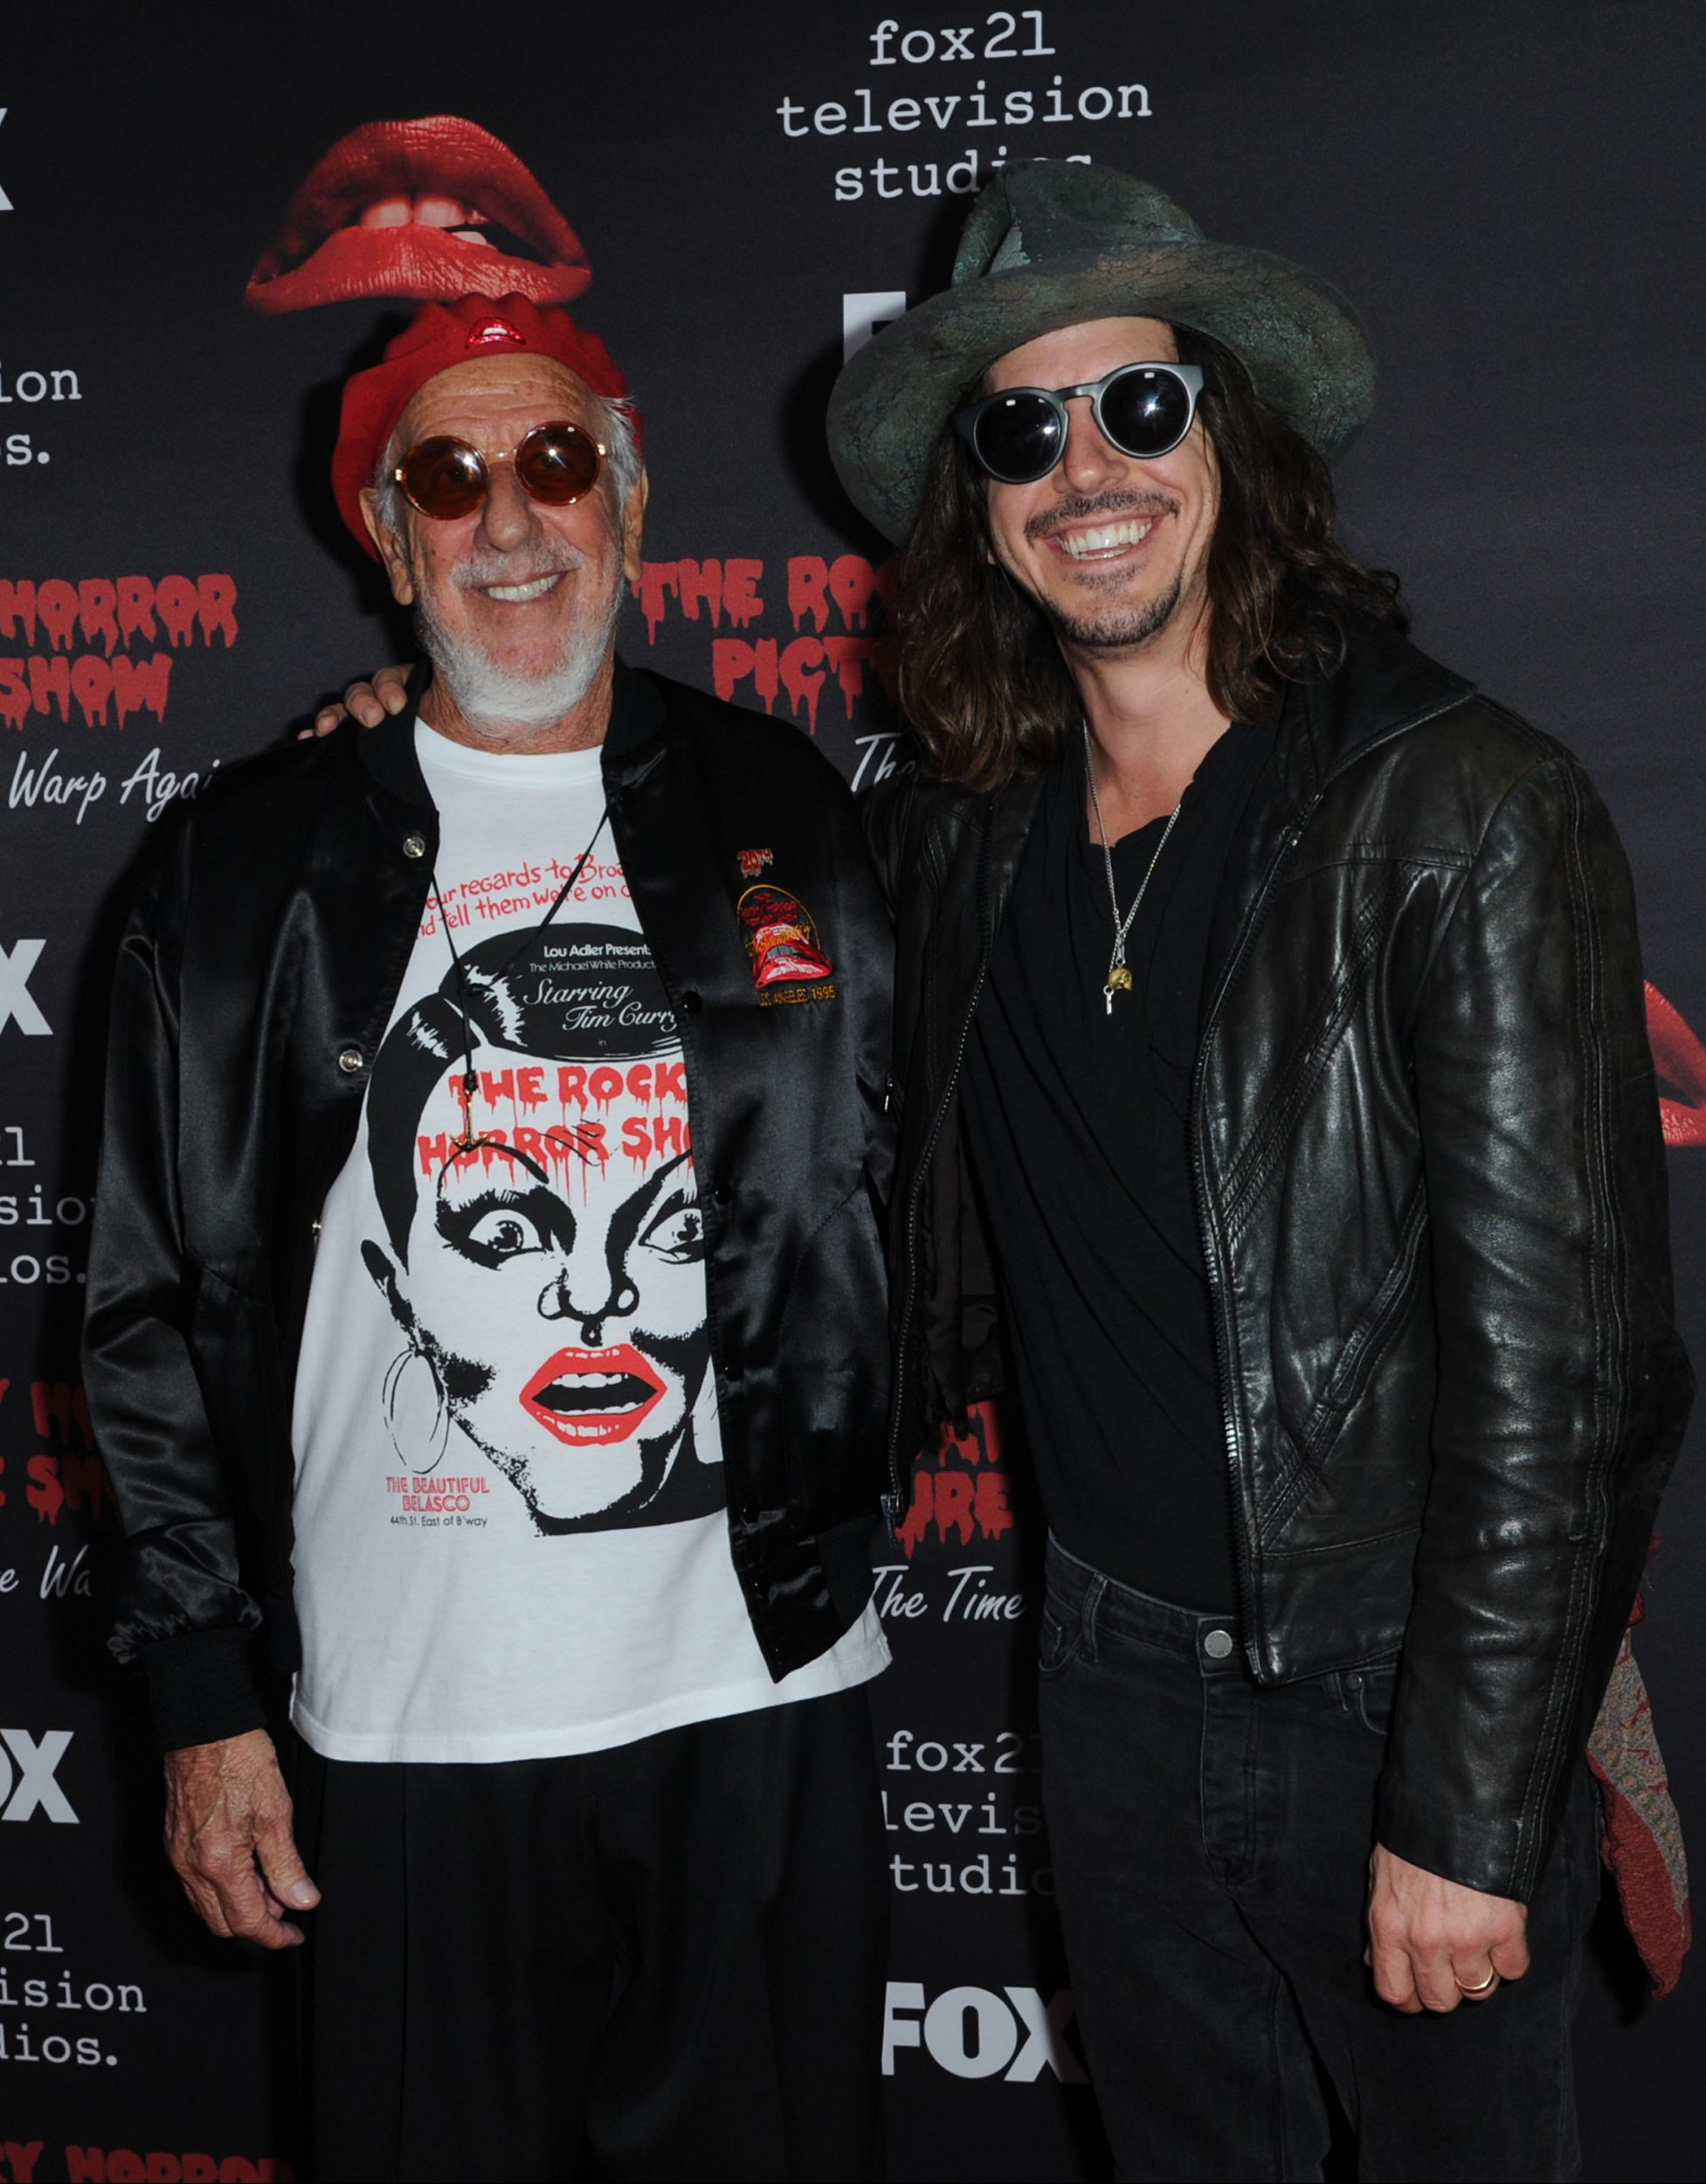 THE ROCKY HORROR PICTURE SHOW: Let's Do The Time Warp Again (and Transylvanians!): L-R: Executive Producer Lou Adler and Music Producer Cisco Adler arrive at THE ROCKY HORROR PICTURE SHOW: Let's Do The Time Warp Again (and Transylvanians!) premiere party red carpet at The Roxy on Thursday, Oct. 13, in Los Angeles, CA. THE ROCKY HORROR PICTURE SHOW: Let's Do The Time Warp Again (And Transylvanians!) premieres Thursday, Oct. 20 (8:00-10:00 PM ET/PT) on FOX. © 2016 FOX BROADCASTING CR: Richard Shotwell/FOX